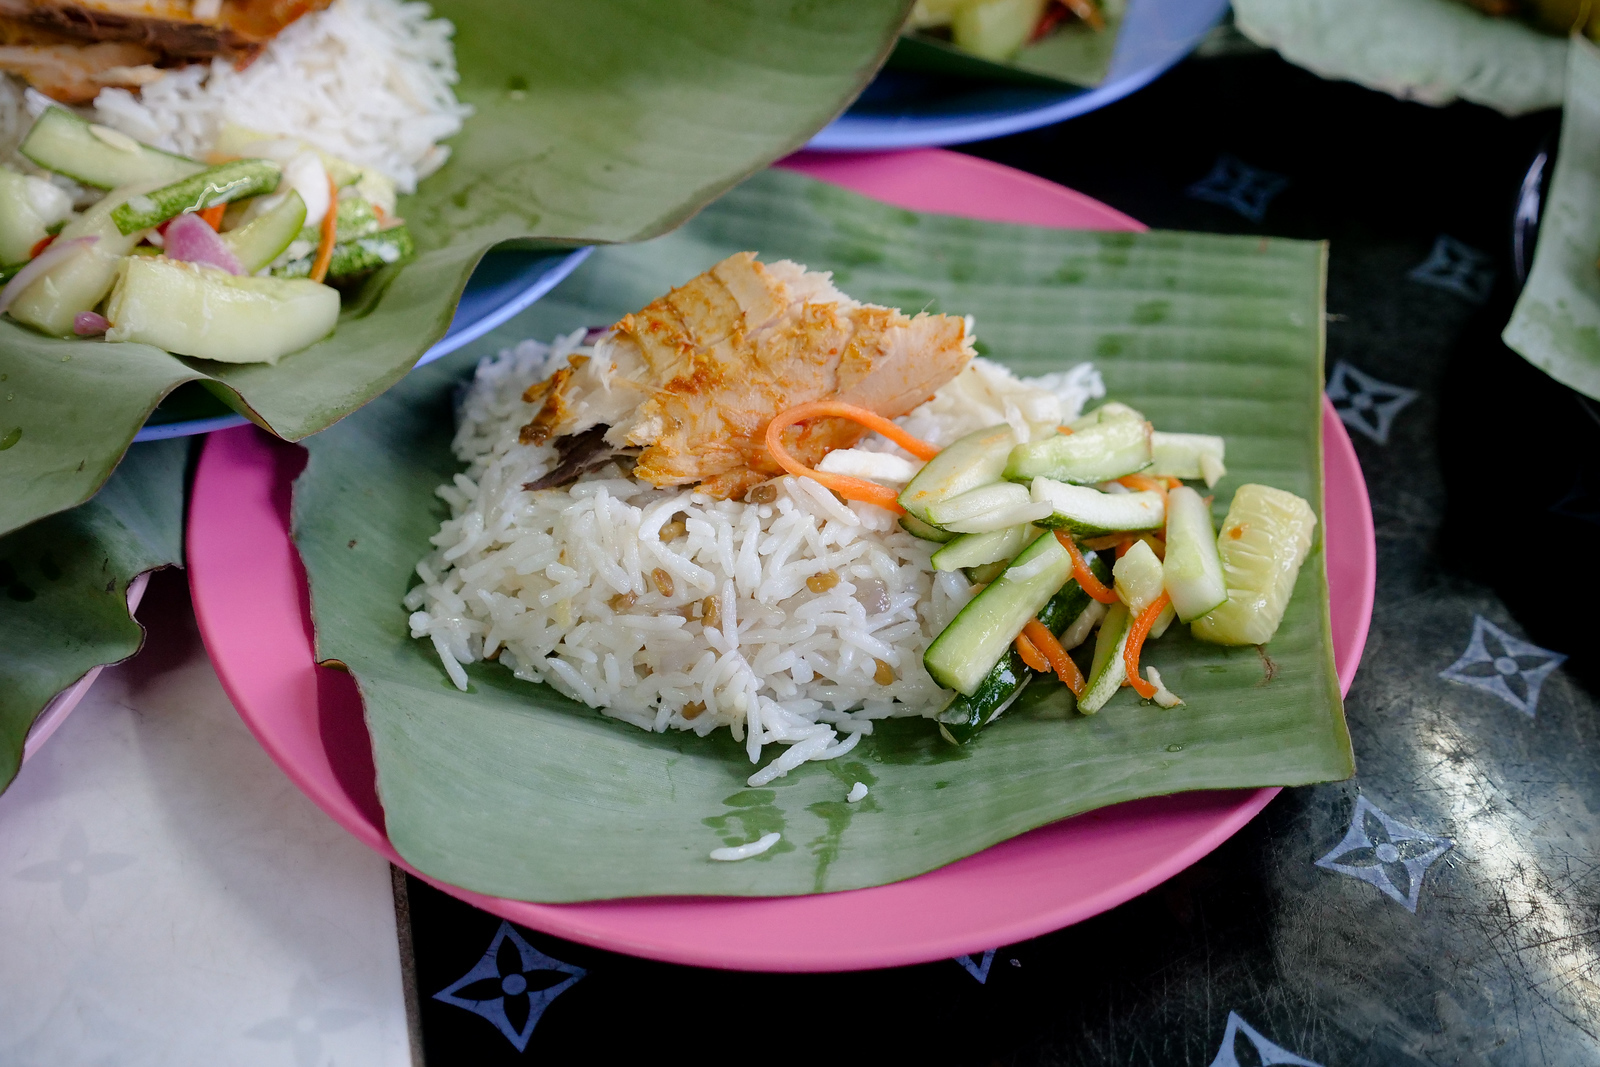 A simple combination of fish over rice, served with a sour cucumber and soft carrot combo